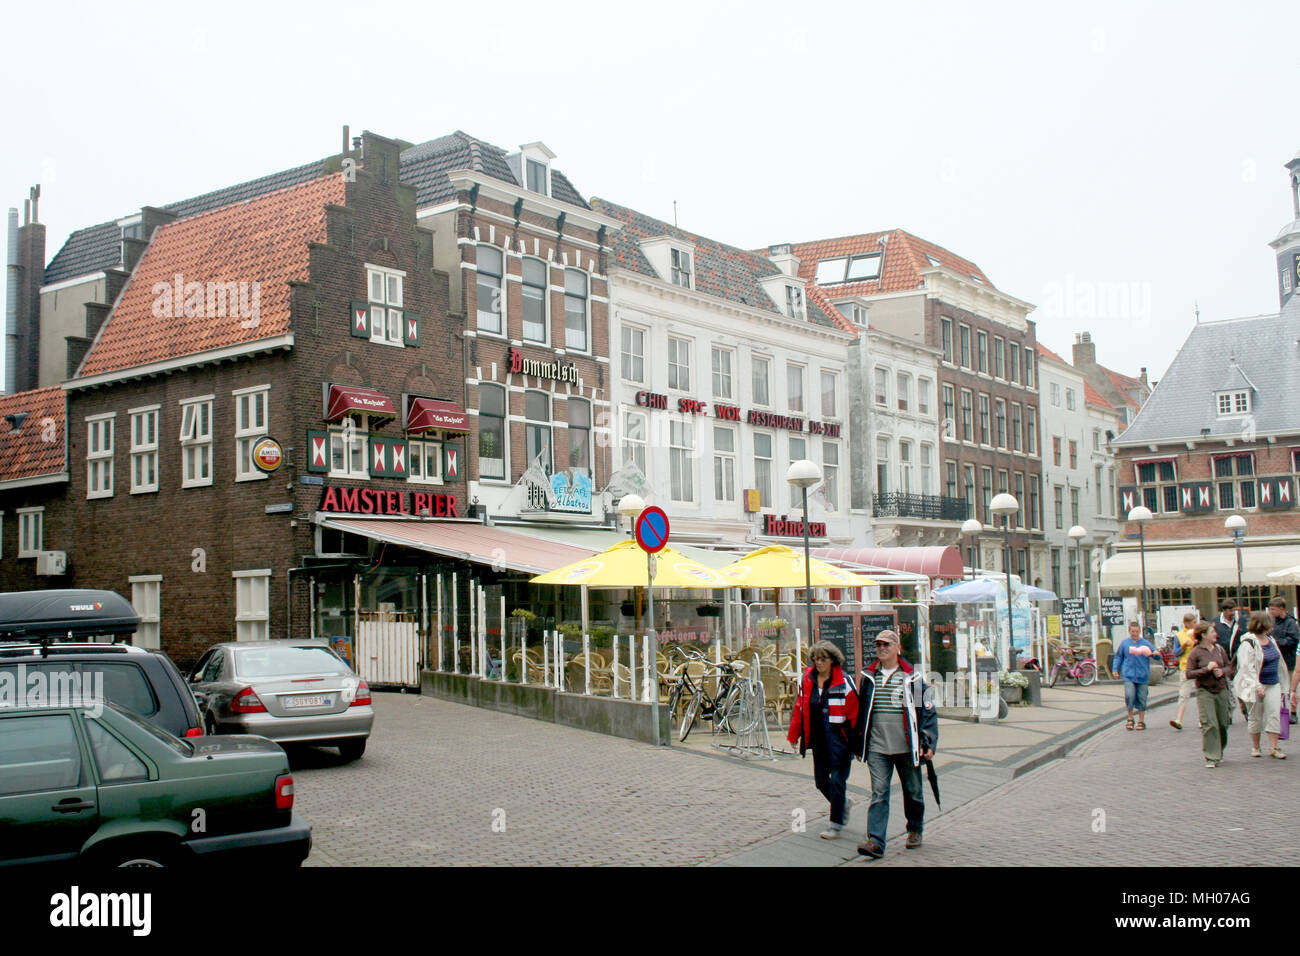 6782a1cf6b8 Netherlands,Holland,Dutch,Zeeland,Vlissingen, june 2016:Restaurants and  terraces on the Bellamypark